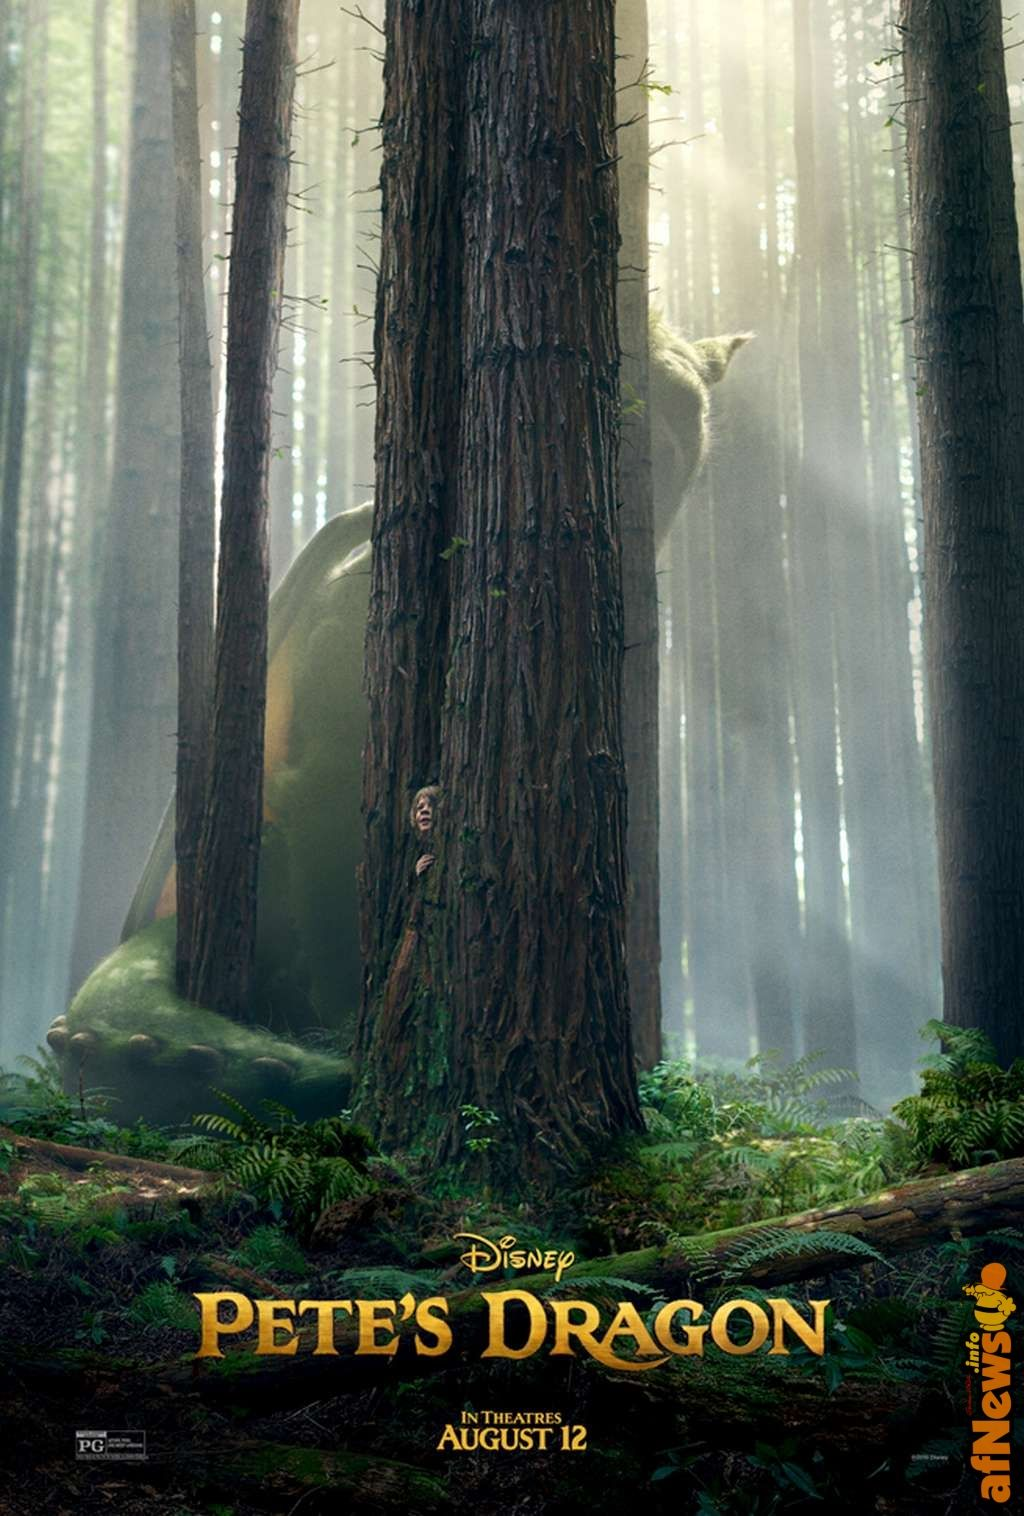 [afnWS] Disney Releases Pete's Dragon Still and Motion Posters - http://www.afnews.info/wordpress/2016/02/19/afnws-disney-releases-petes-dragon-still-and-motion-posters/